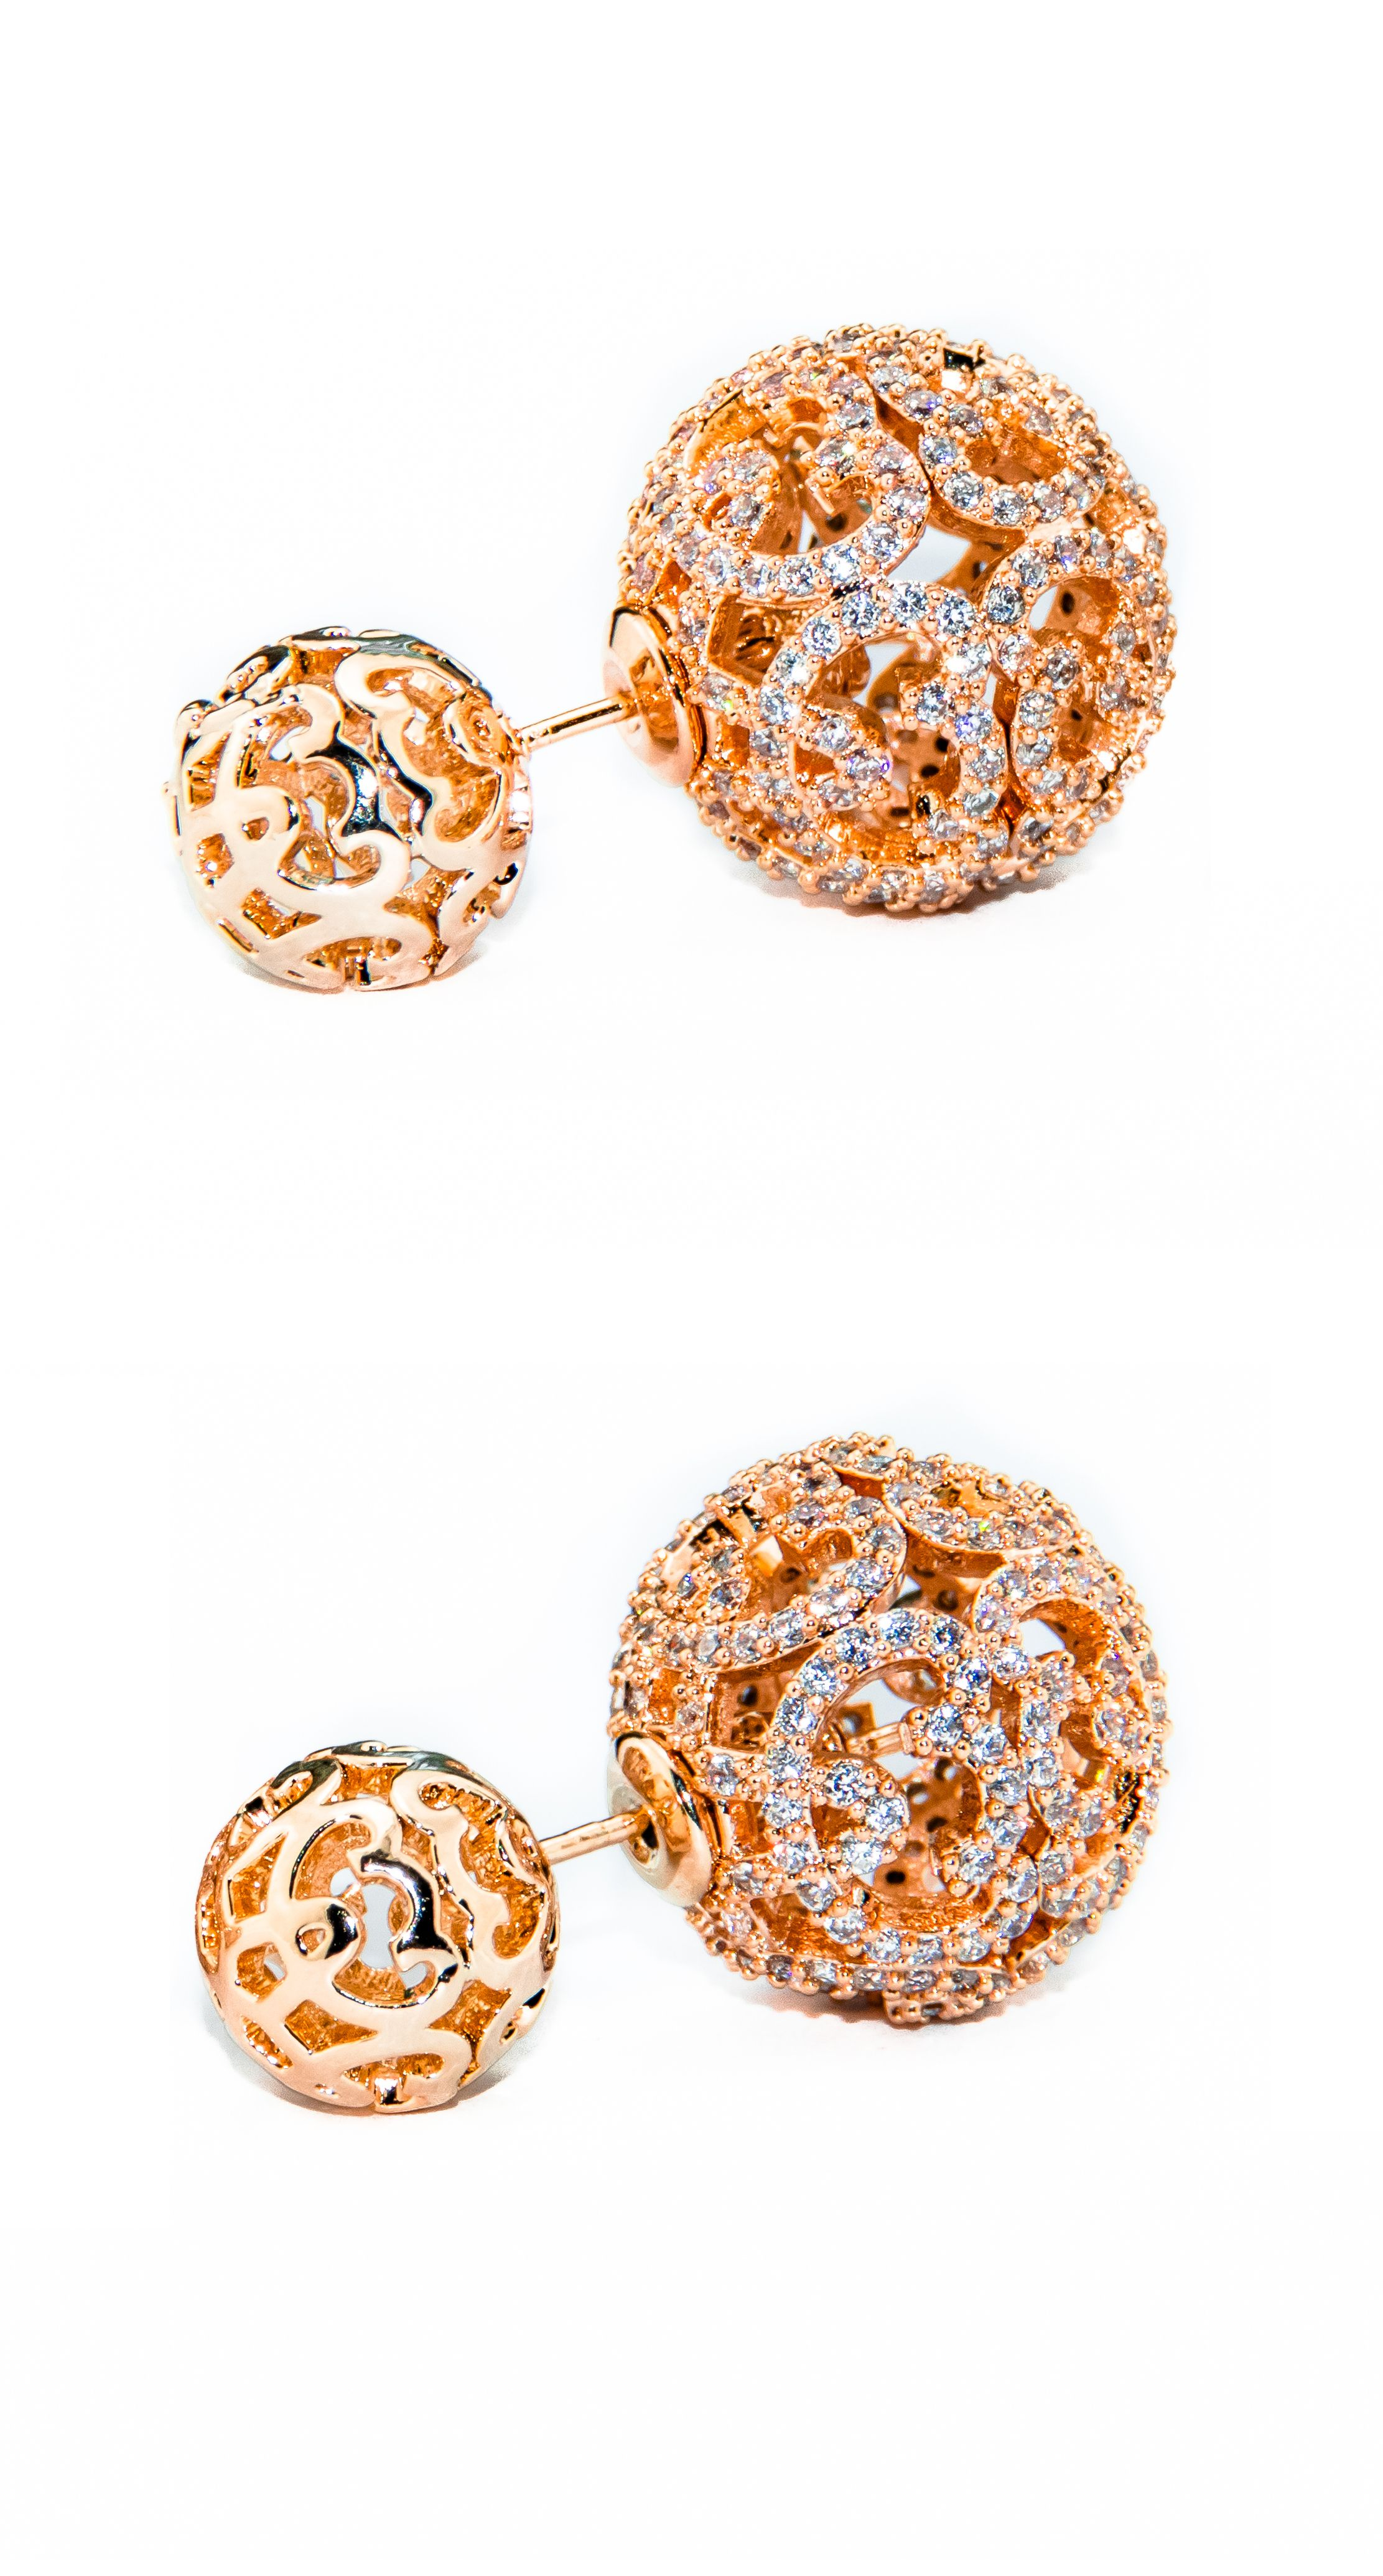 5f98f80d81246c Monaco Gold Double Ball Earring is carefully crafted to perfection. This  earring is plated with 18K Rose Gold and paved with premium cubic zirconia  crystals ...